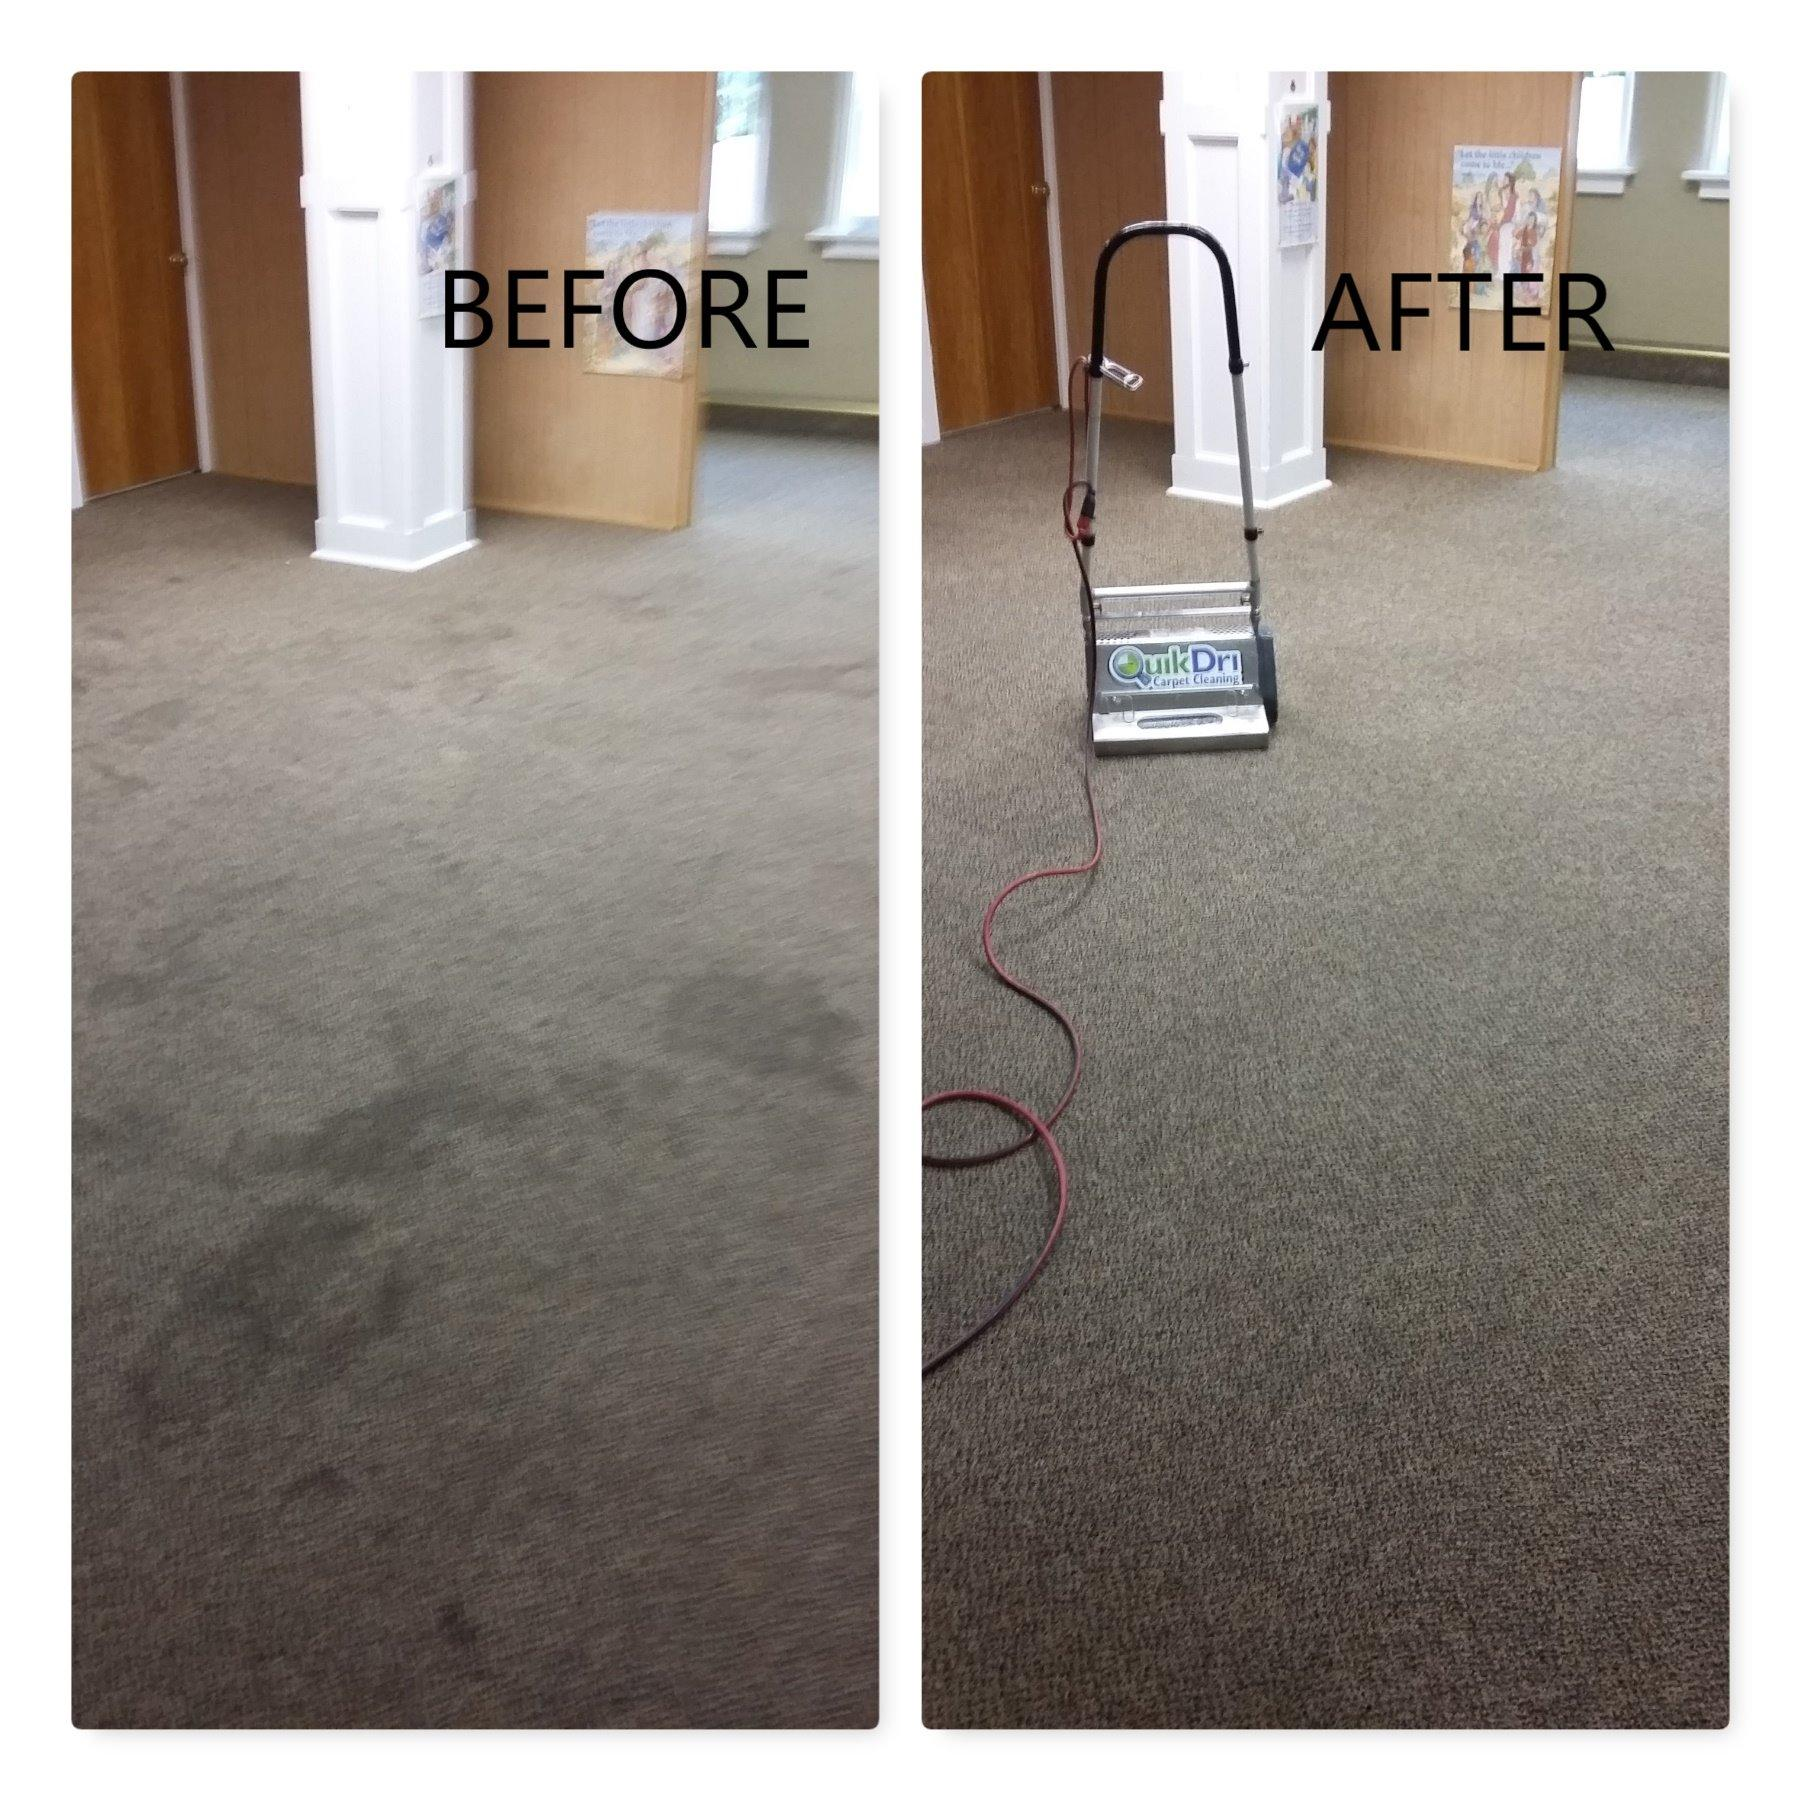 Carpet Cleaning Carpet Cleaners Georgetown Tx Quikdri Carpet Cleaning